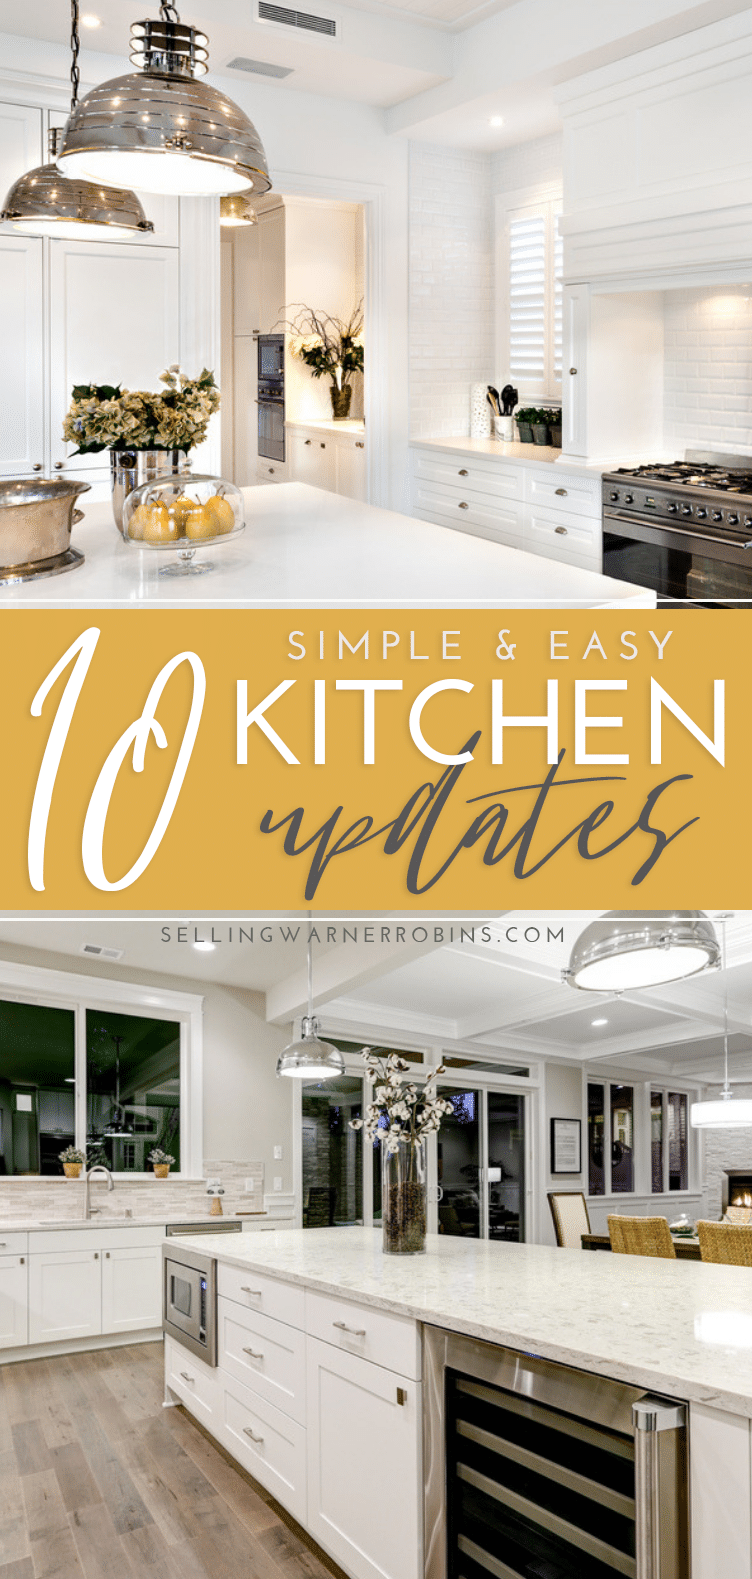 Ten Tips to Creating Your Dream Kitchen